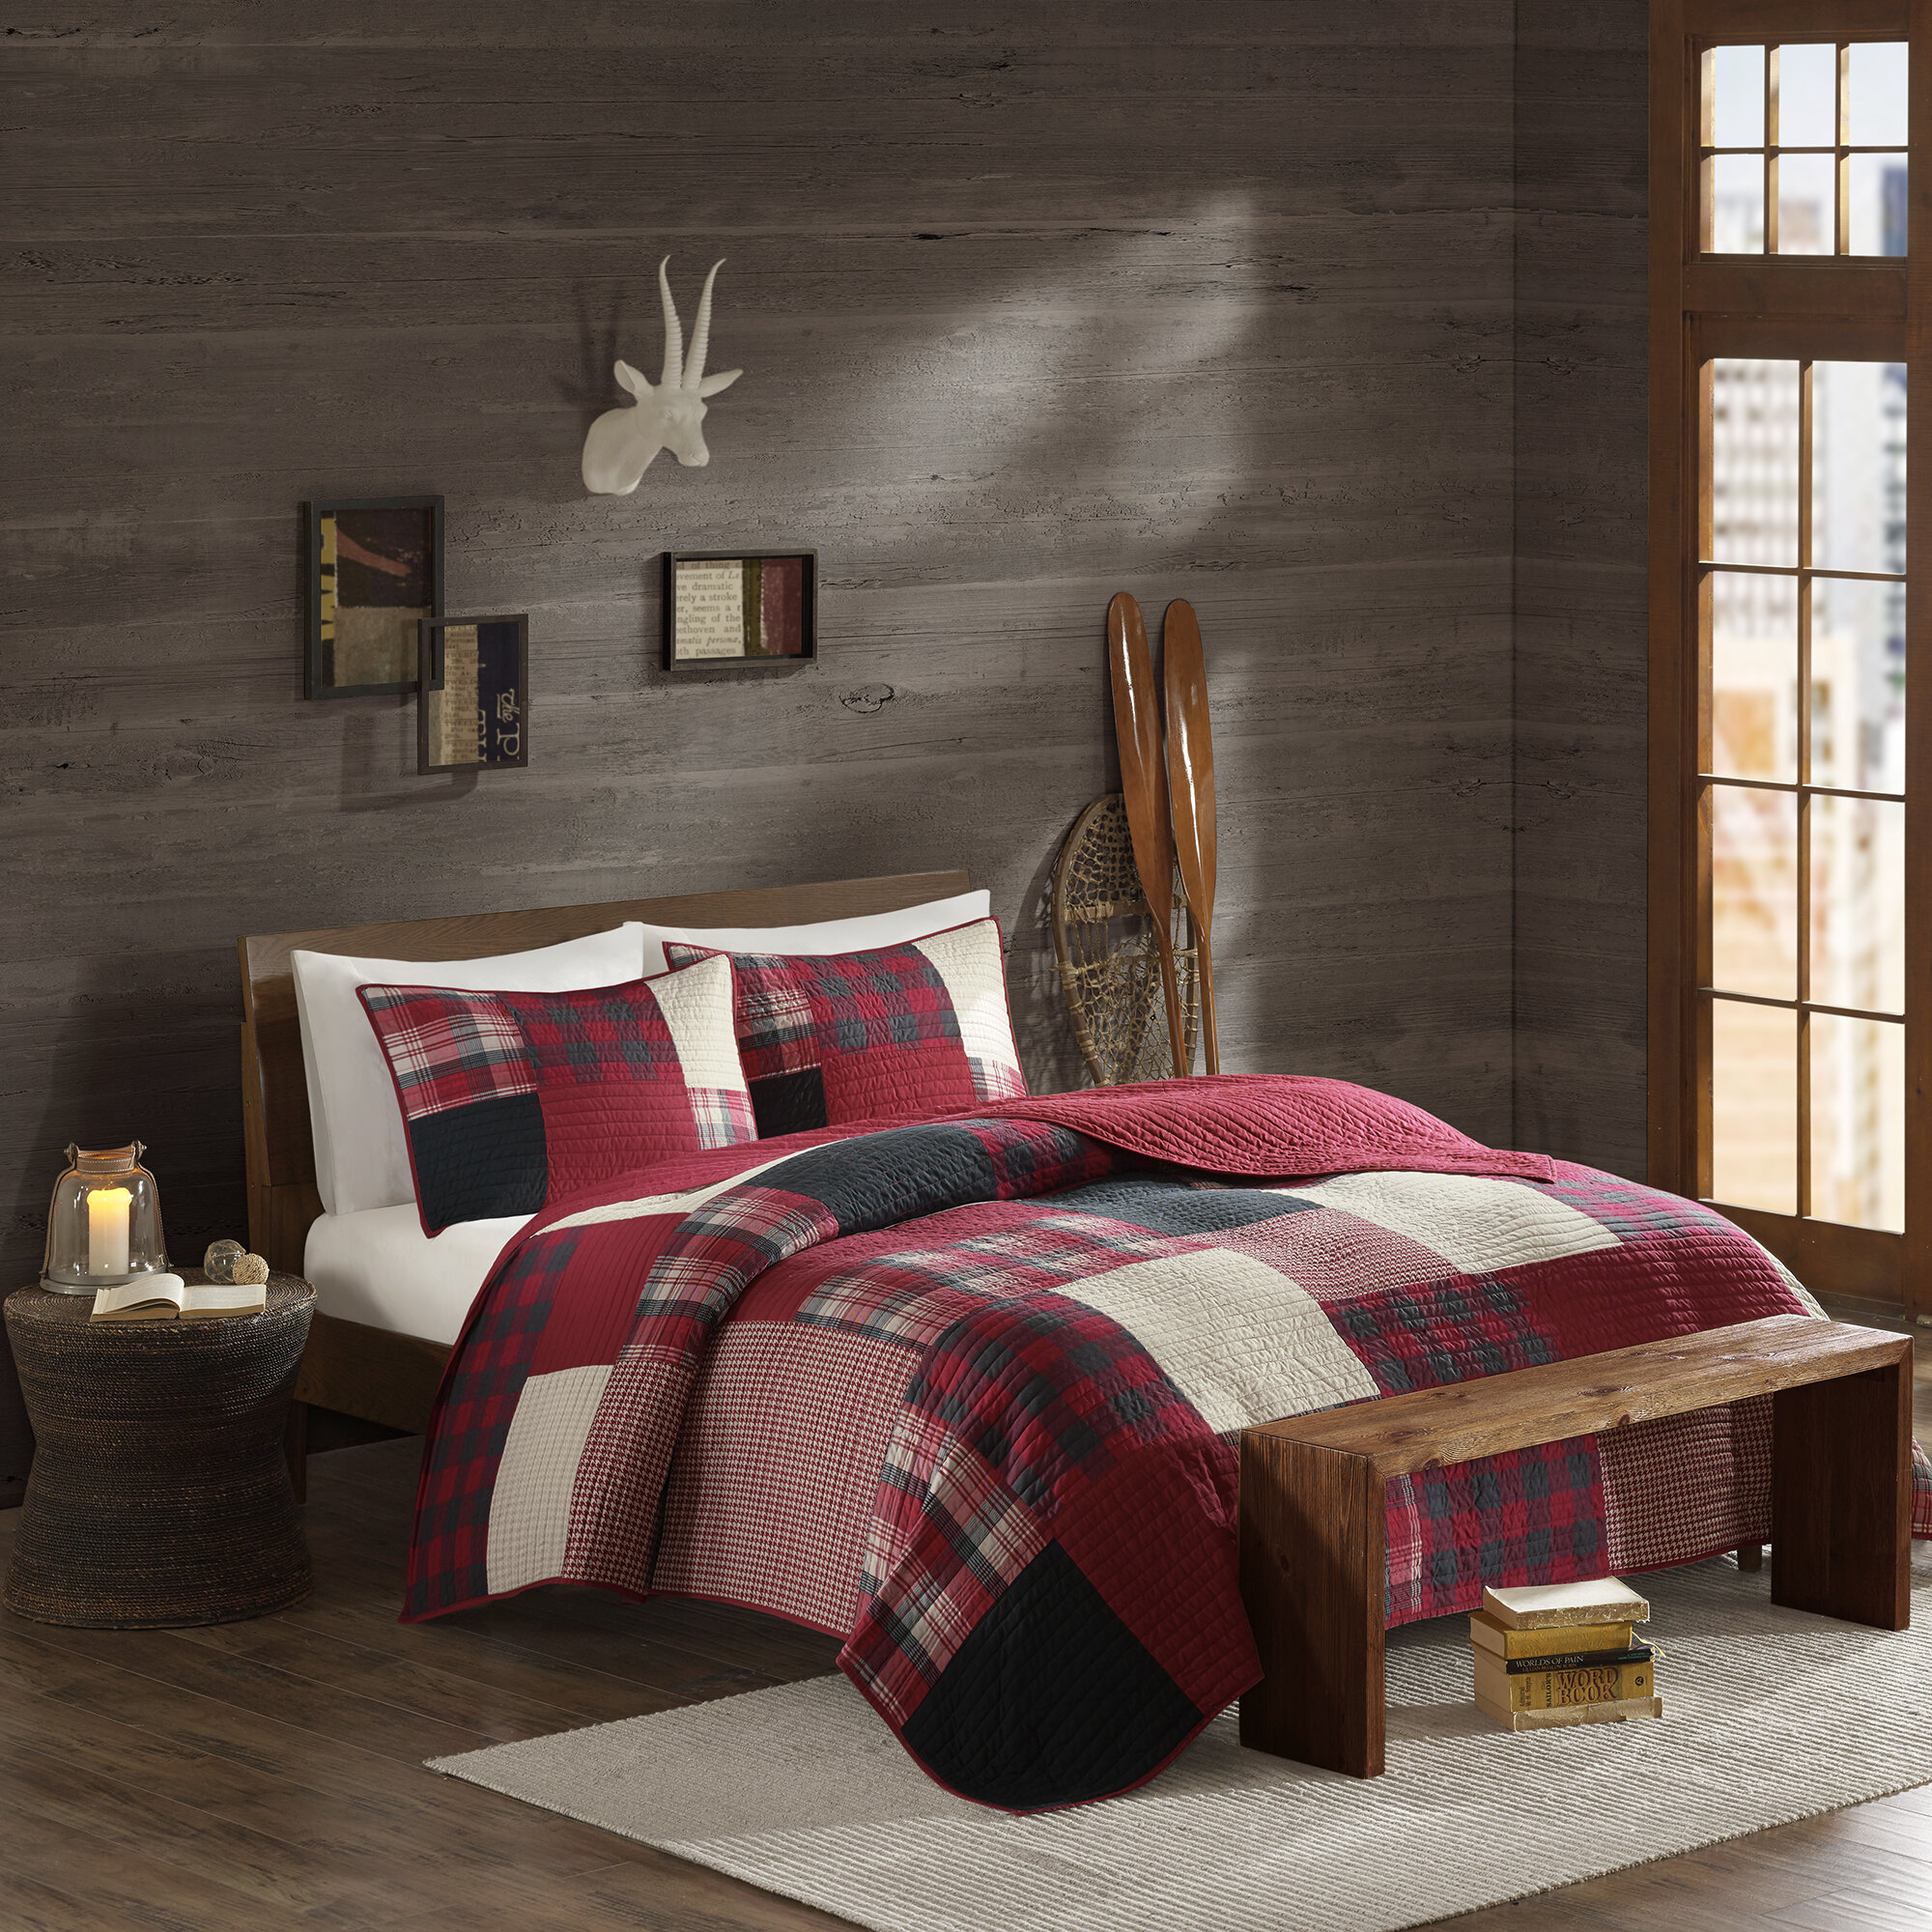 Cabin Rustic Bedding Sets You Ll Love In 2021 Wayfair